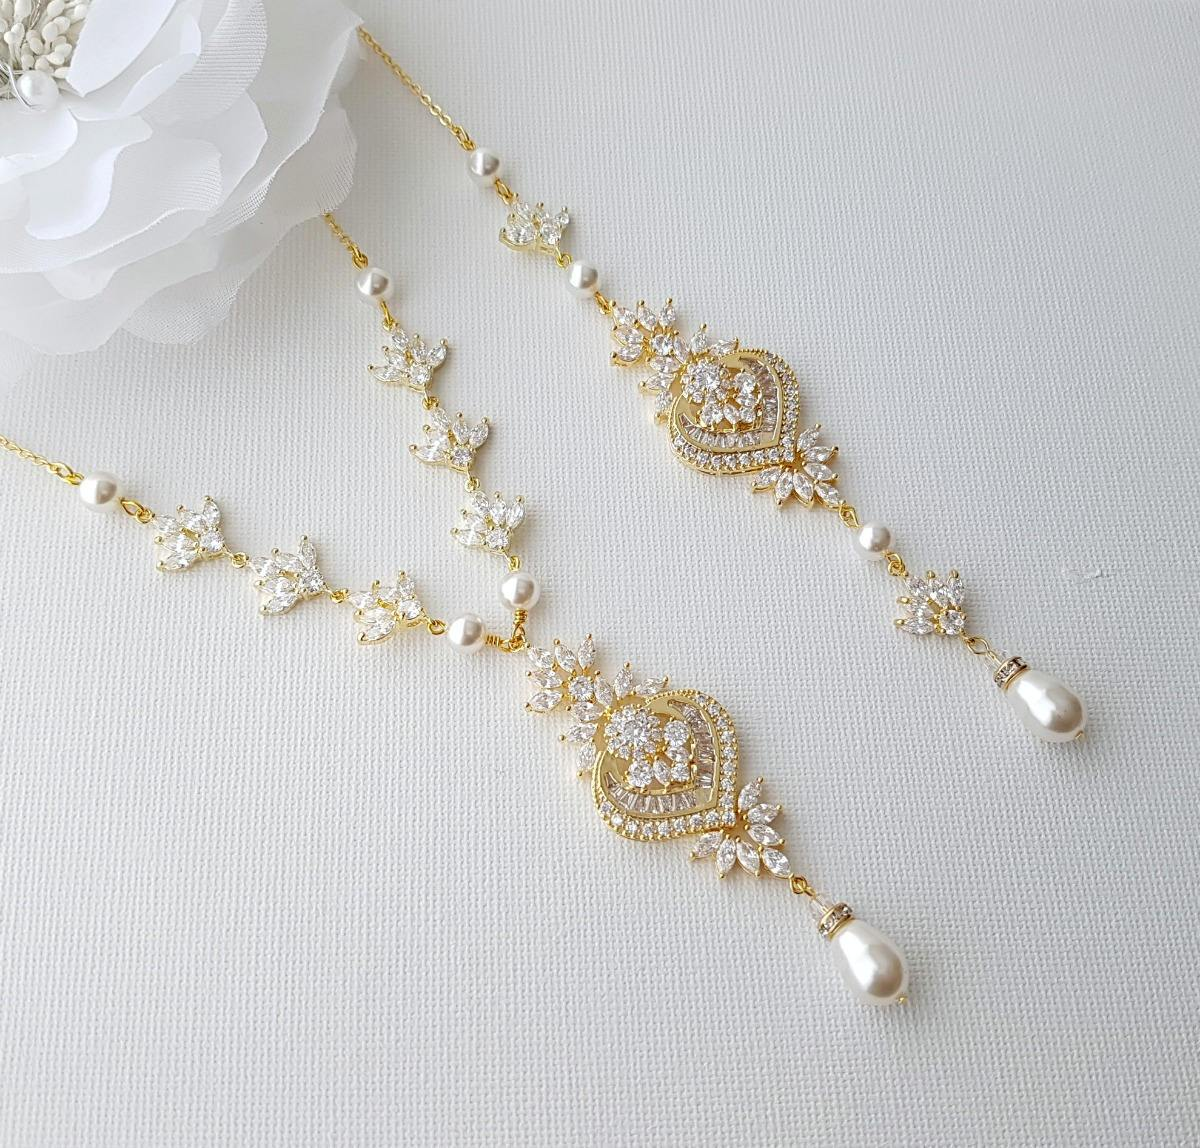 Gold Backdrop Bridal Necklace, Wedding Back Necklace, Crystal Backdrop Necklace, Swarovski Pearls, Rose Gold, Bridal Jewelry, Rosa - PoetryDesigns